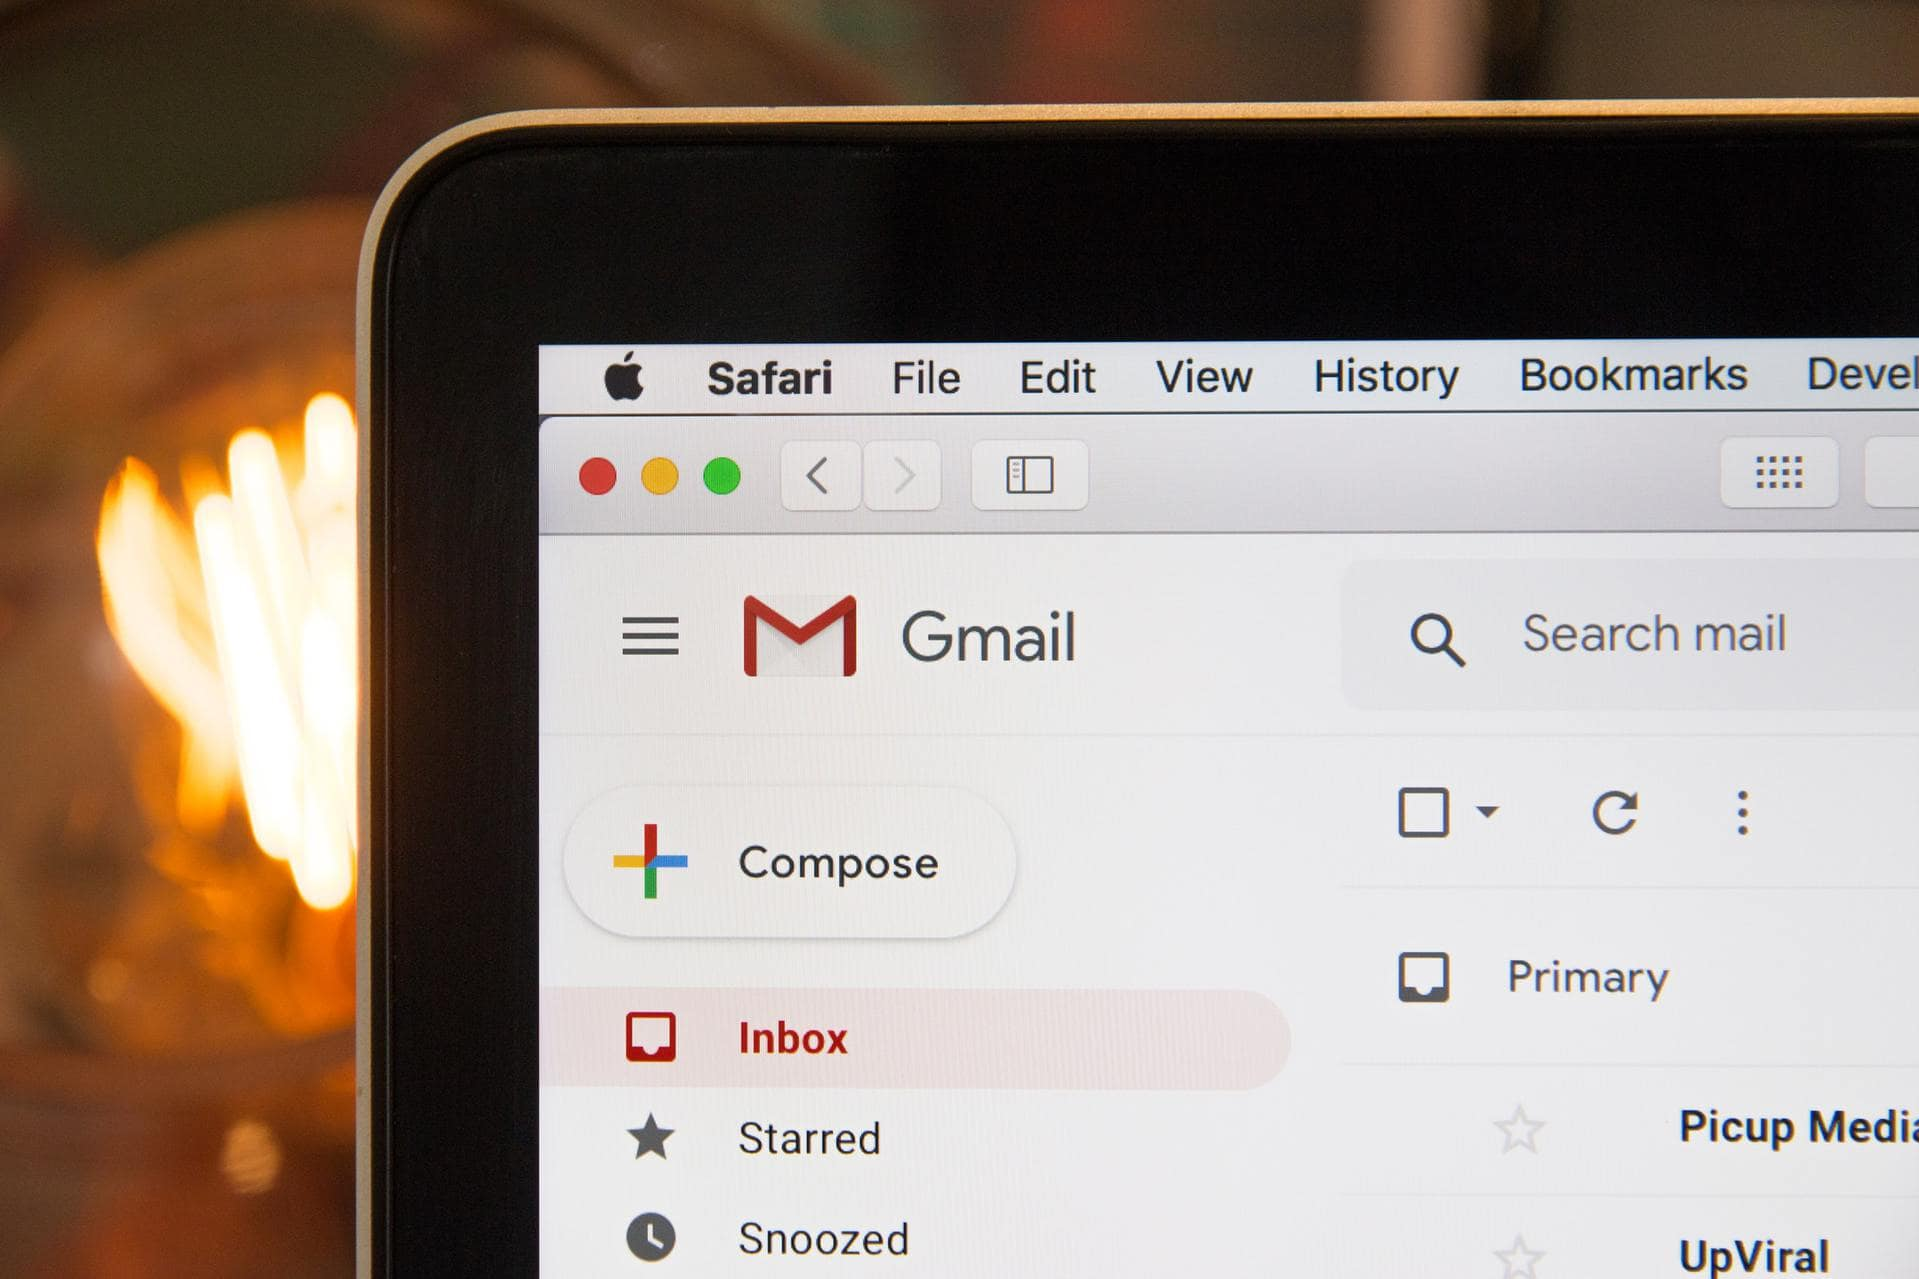 How to Organize Your Gmail Inbox? Easy guide